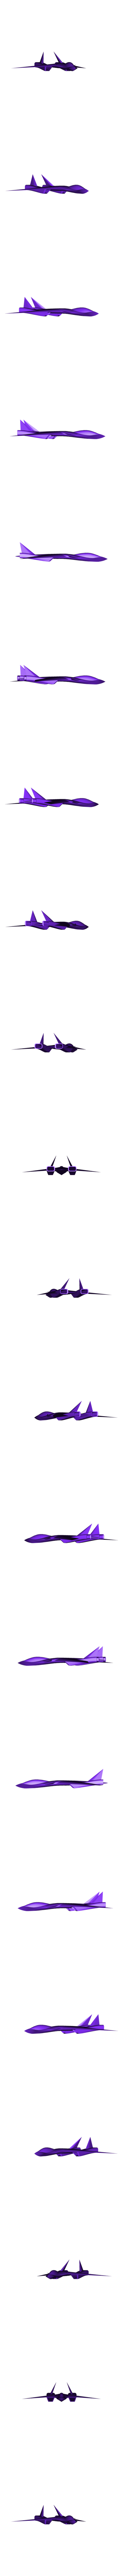 starfighter2.2.2.stl Download free STL file Starfighters with a display stand • 3D print object, morrisblue